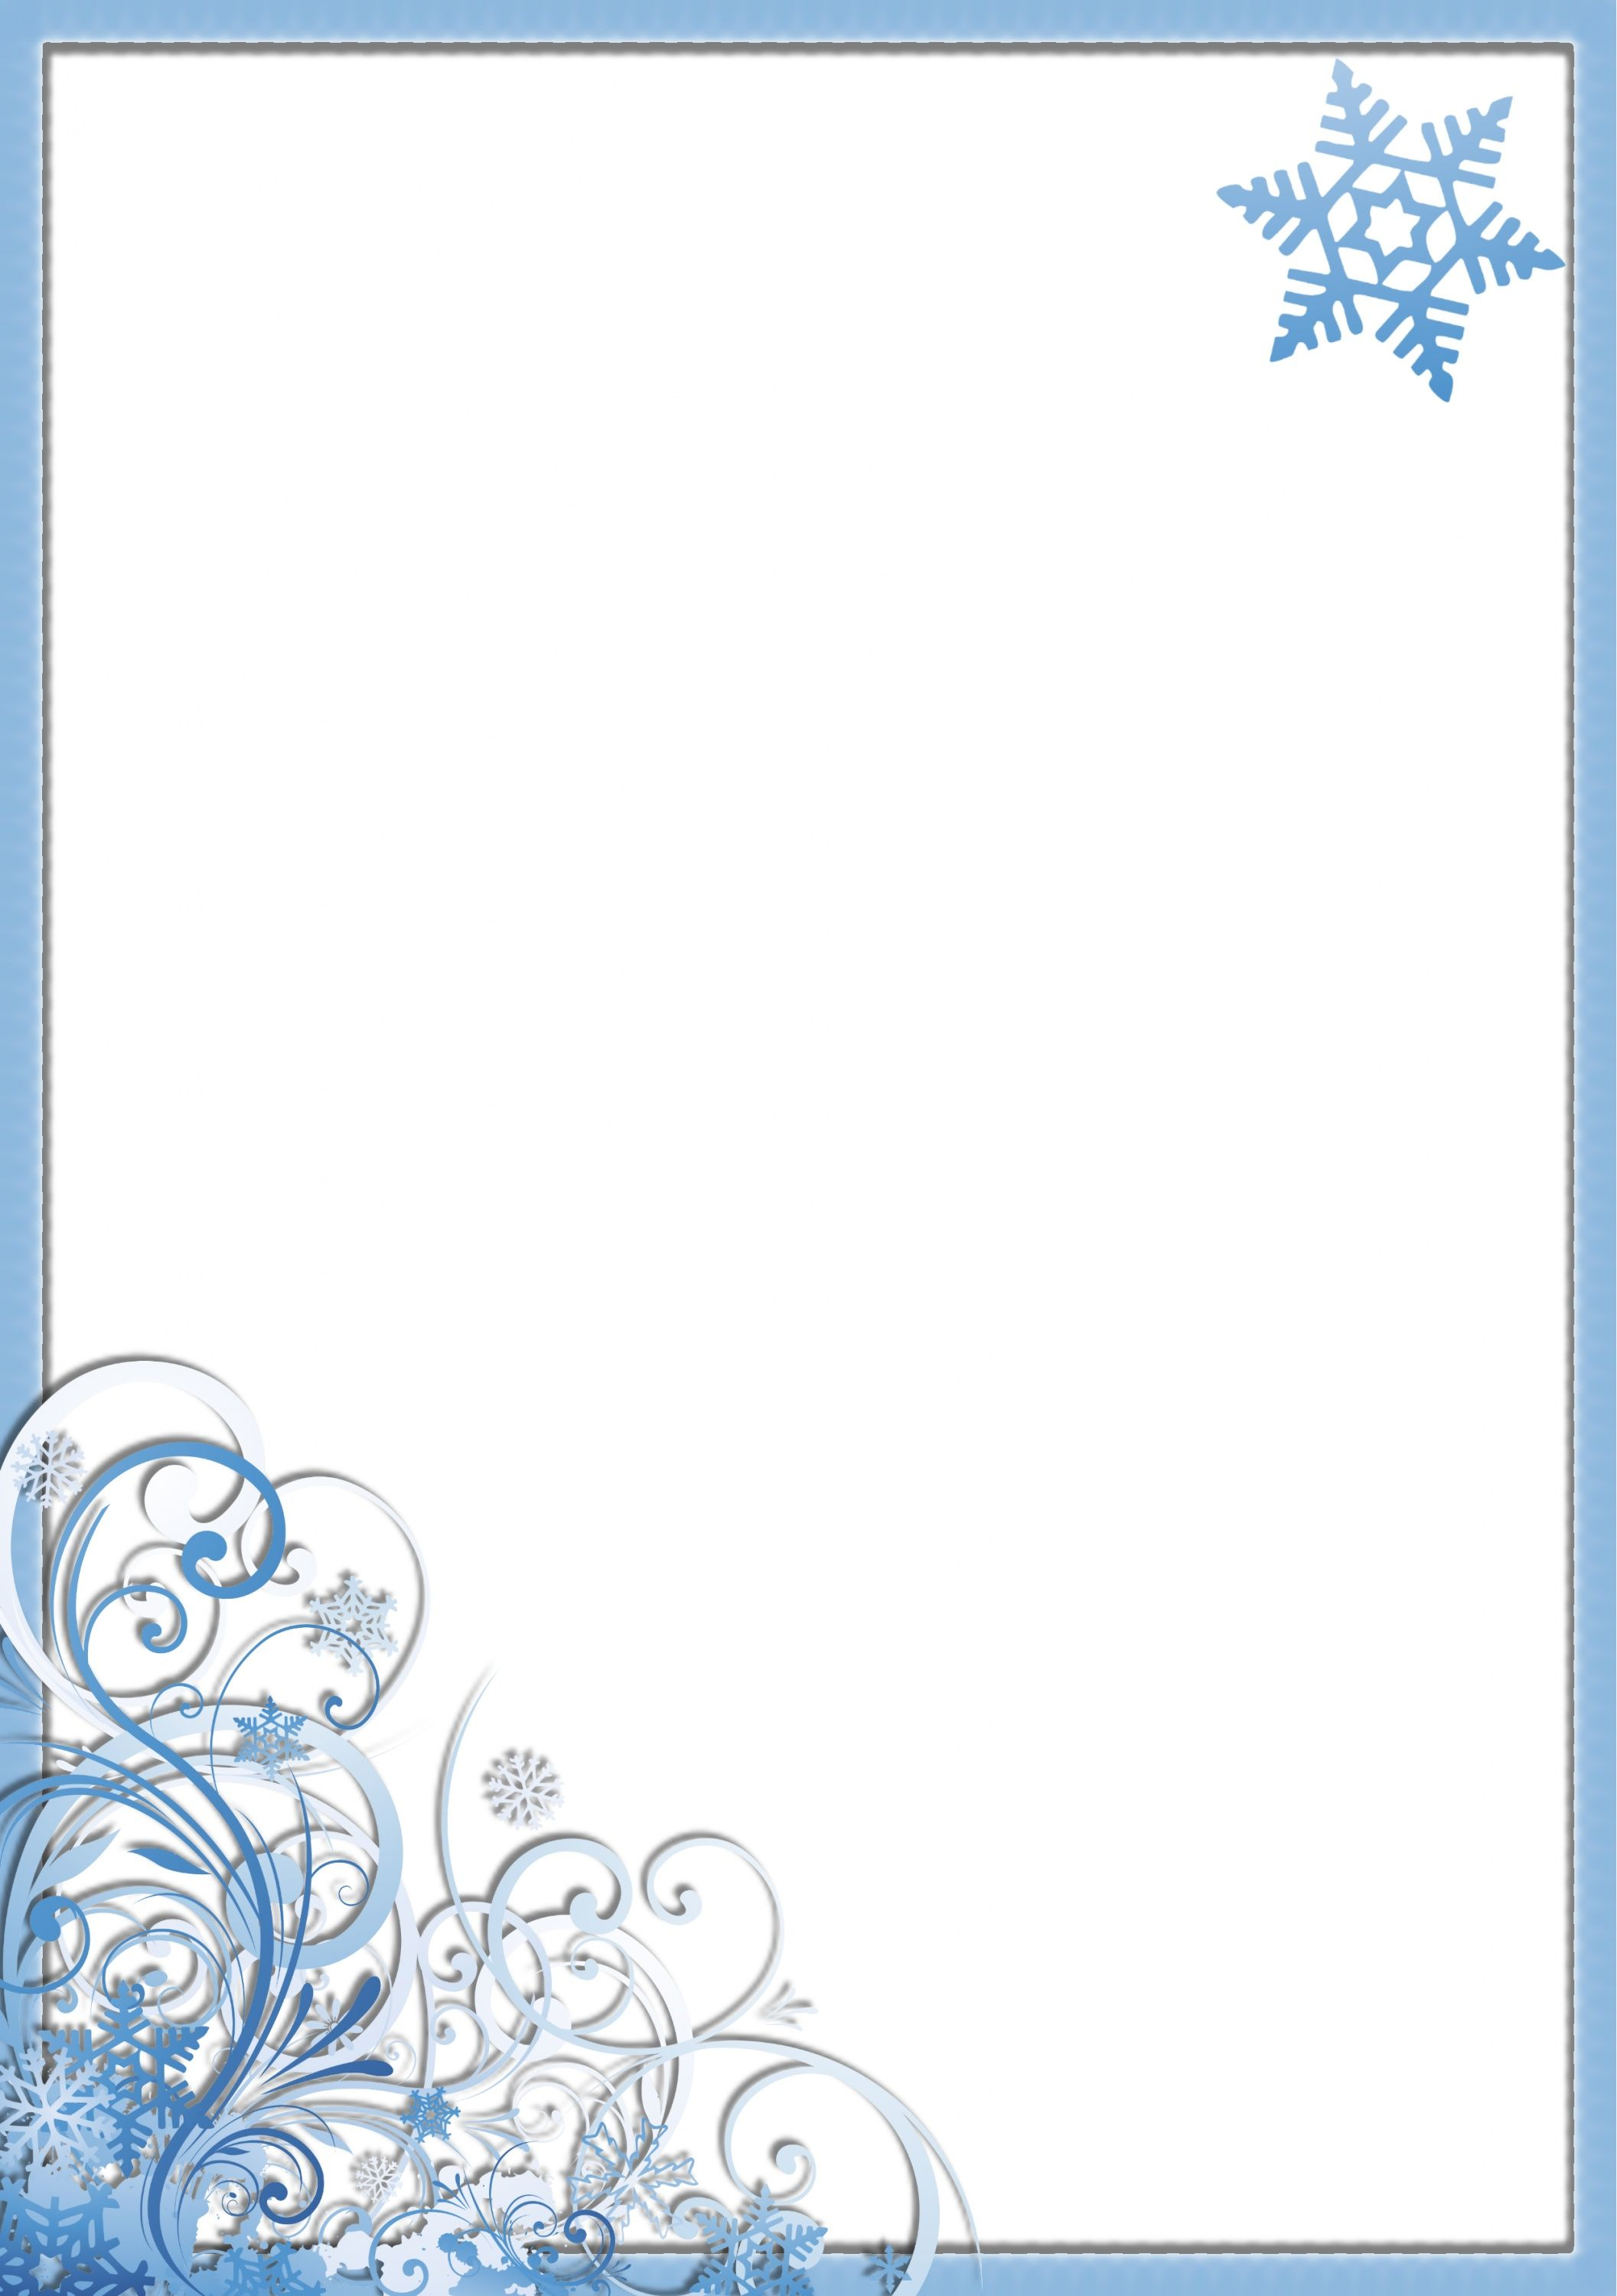 Frozen clipart border, Frozen border Transparent FREE for.